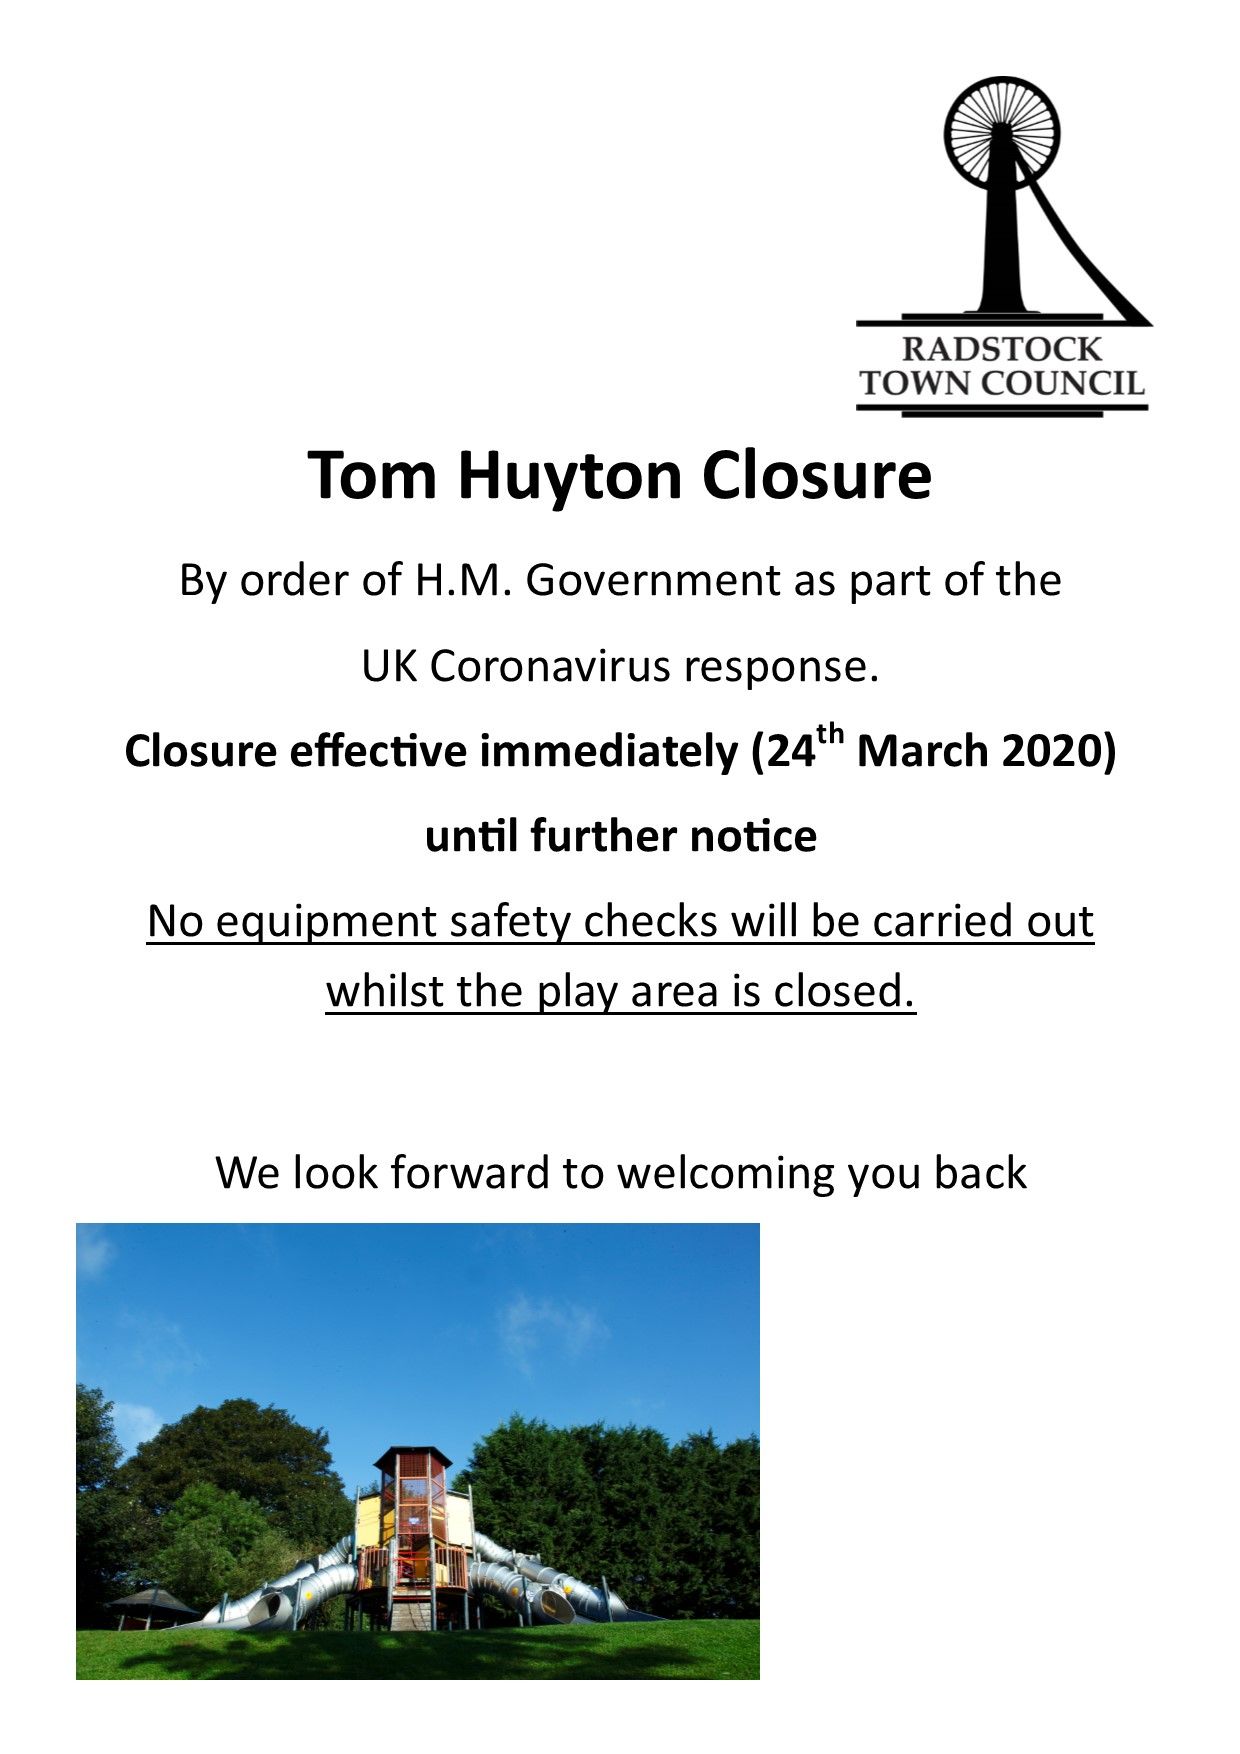 Closure of Tom Huyton